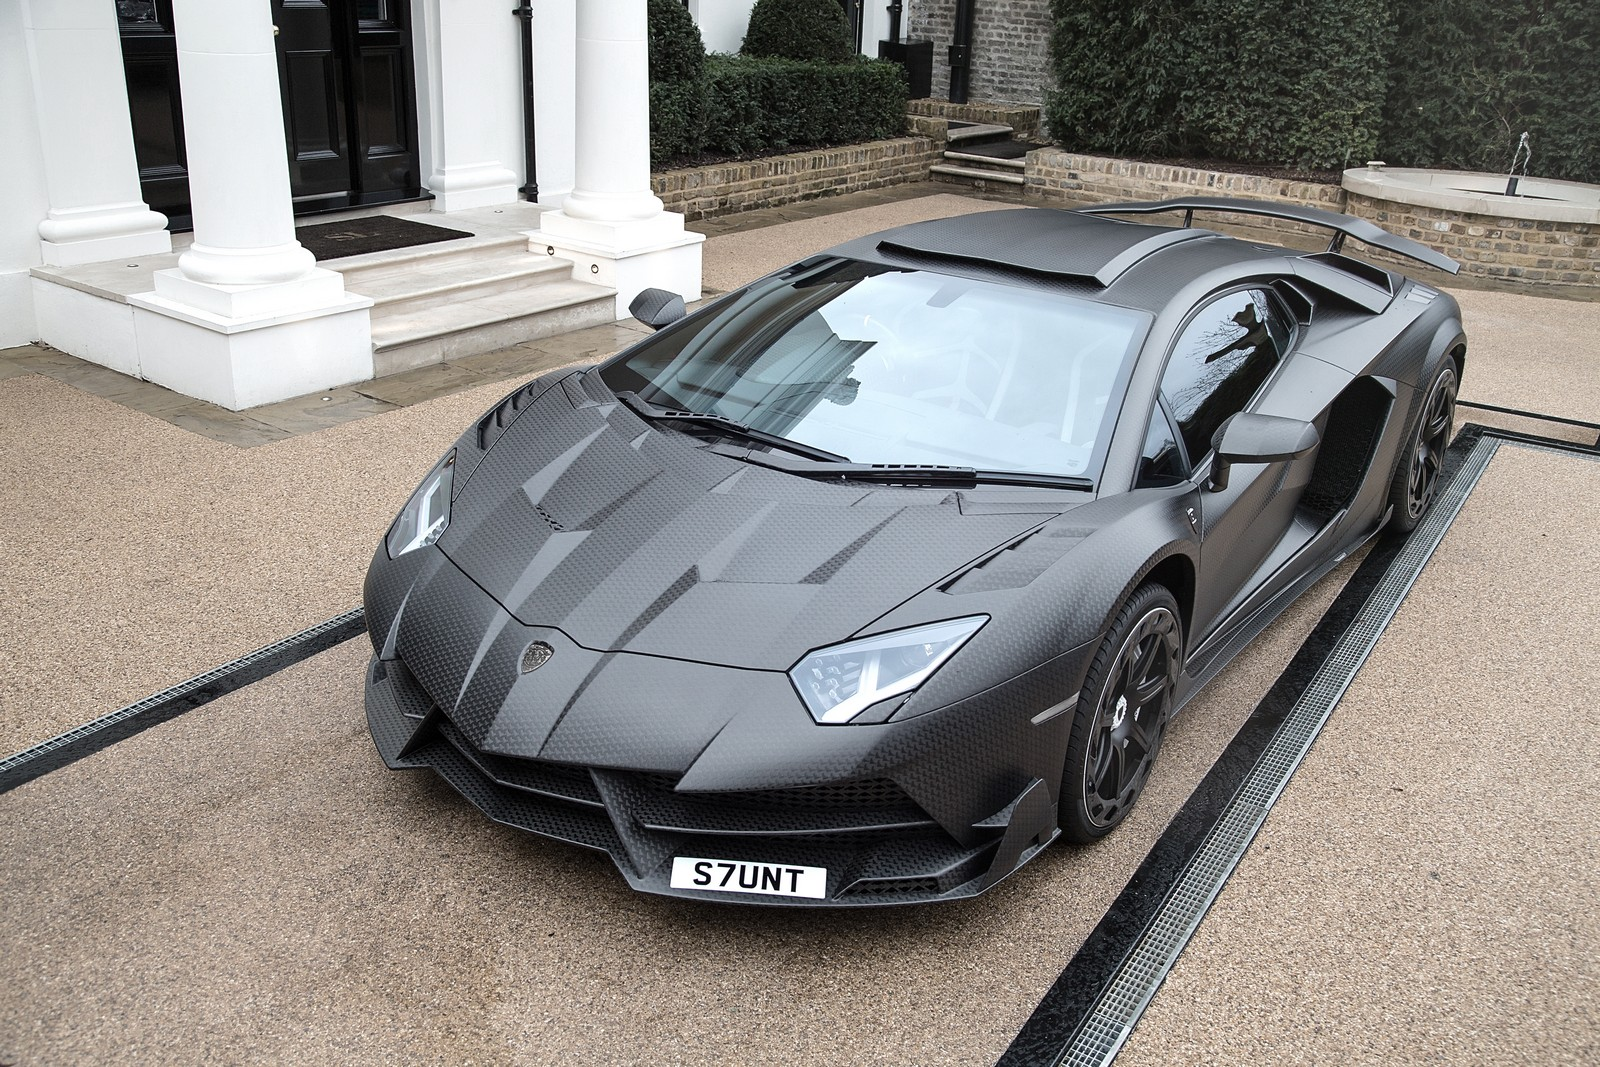 mansory unveils custom lamborghini aventador sv for british billionaire carscoops. Black Bedroom Furniture Sets. Home Design Ideas